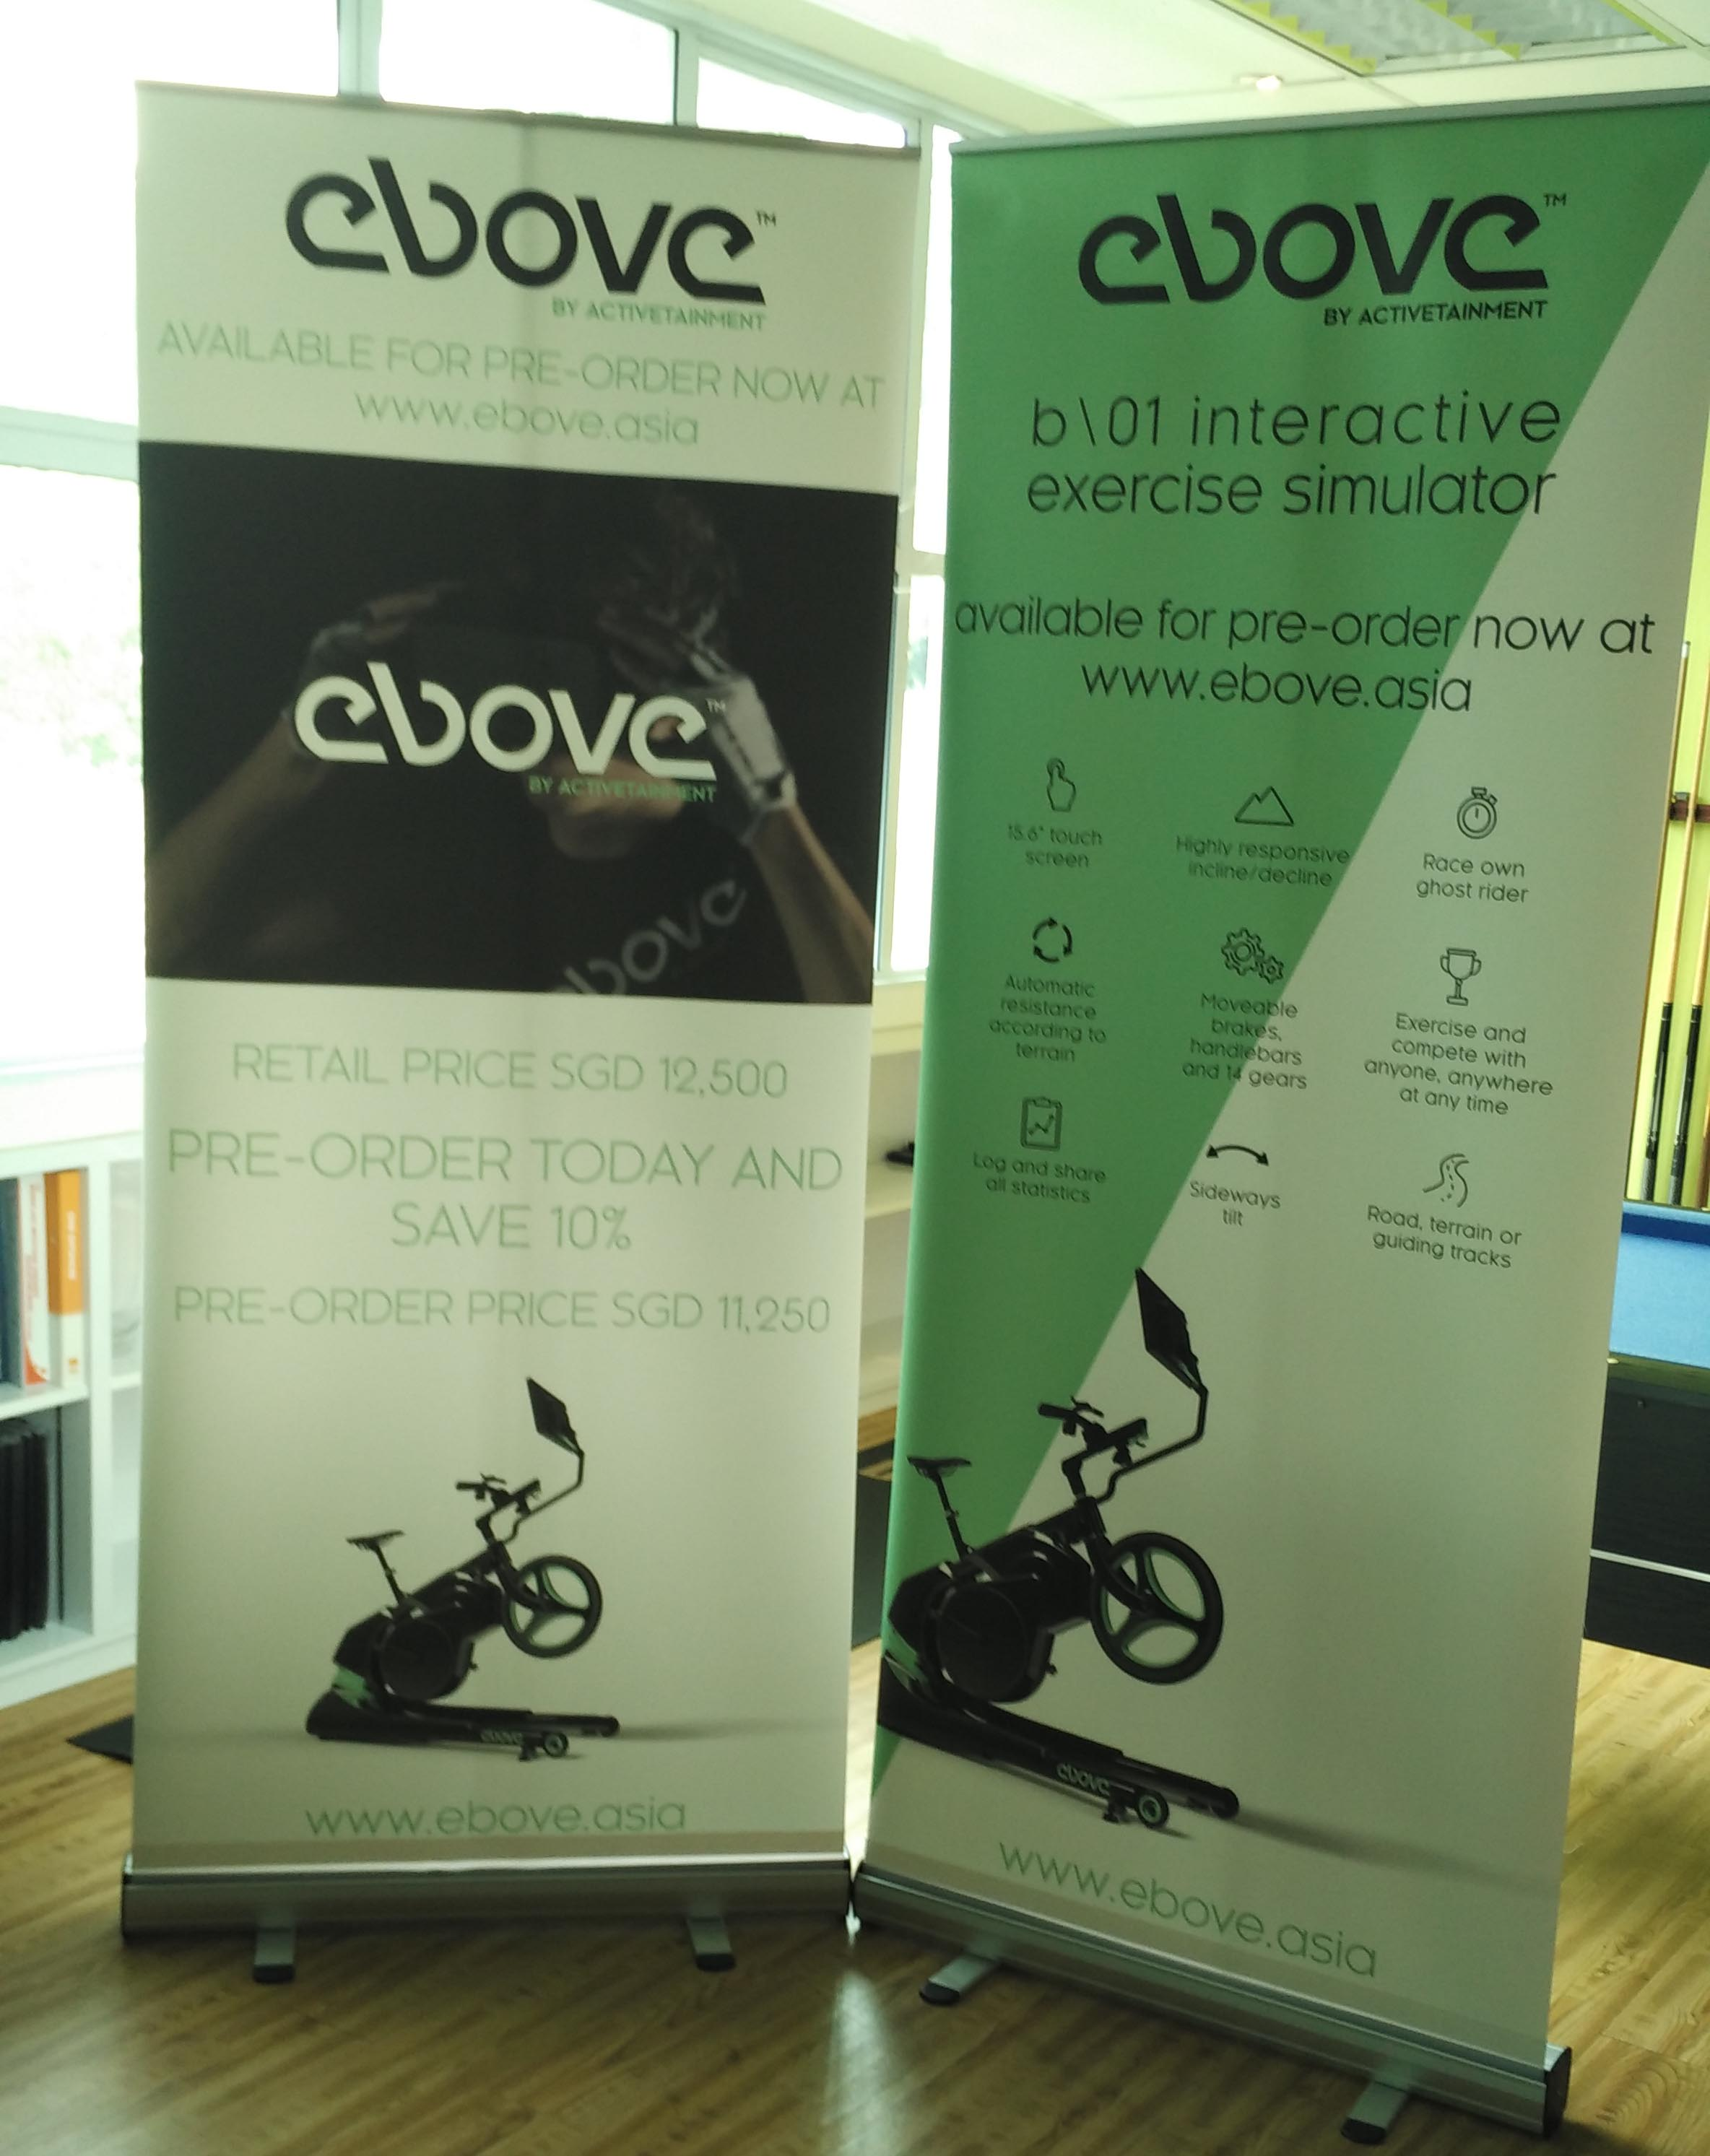 Ebove: Cycle outdoors when indoors